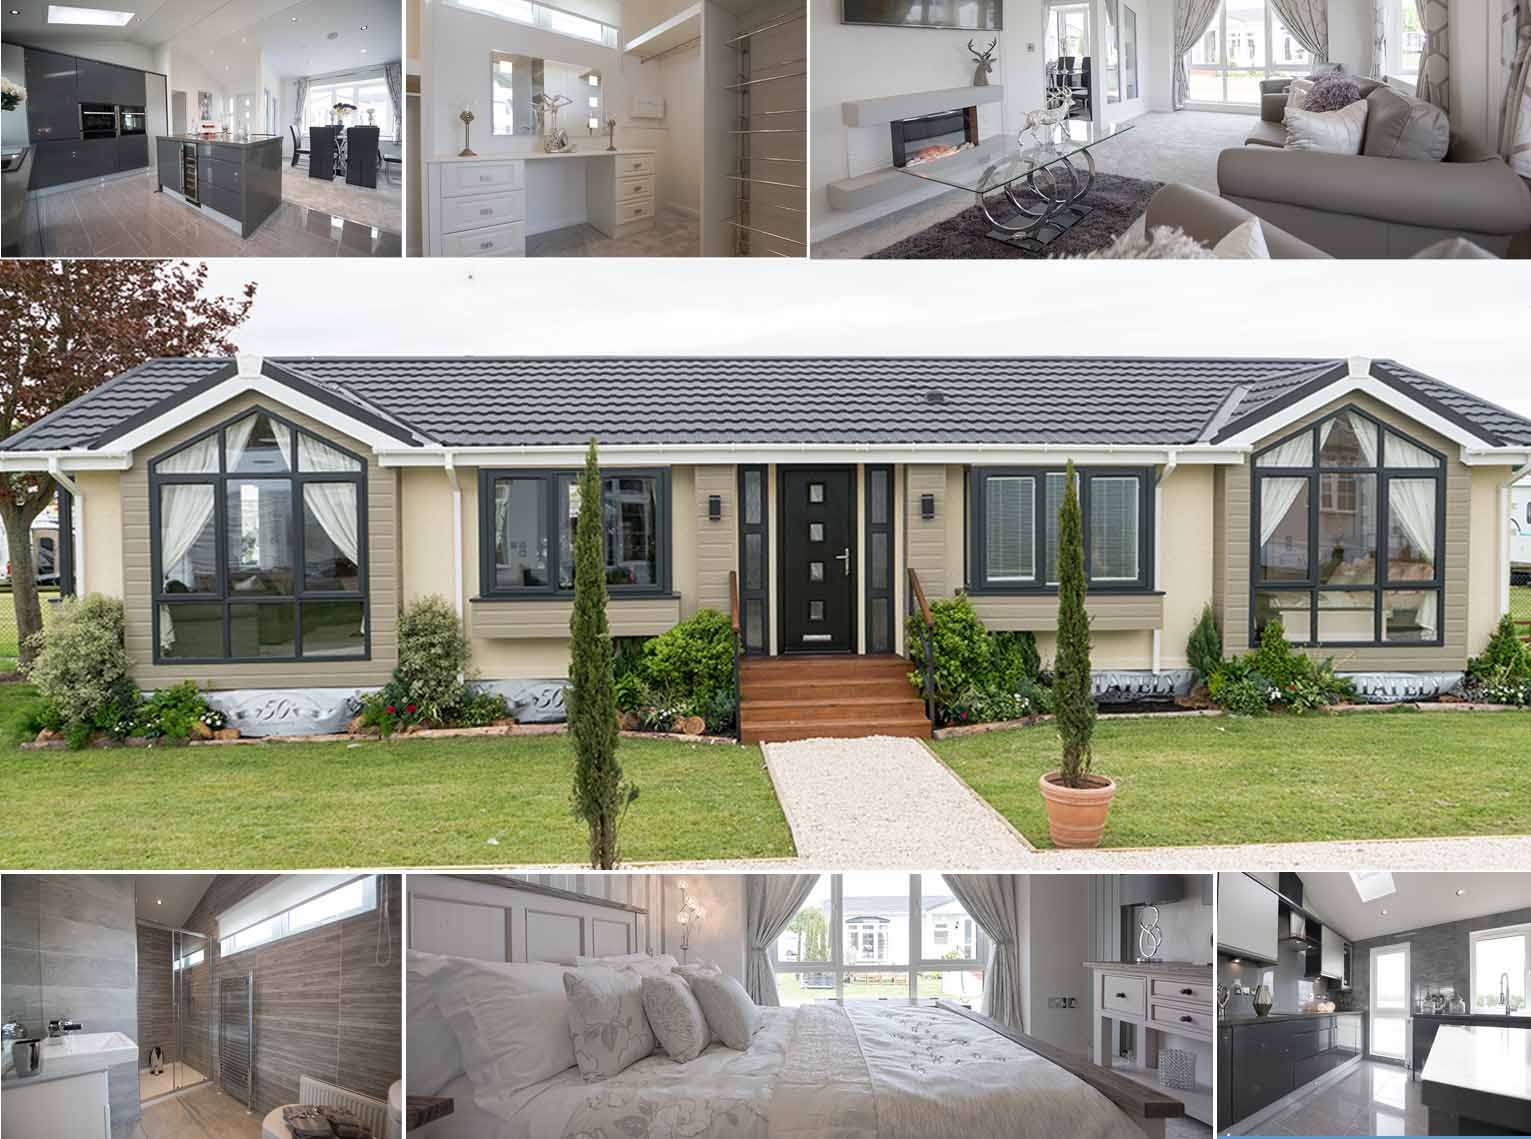 the Kensington Oakleigh park residential homes - residential mobile homes for sale in essex